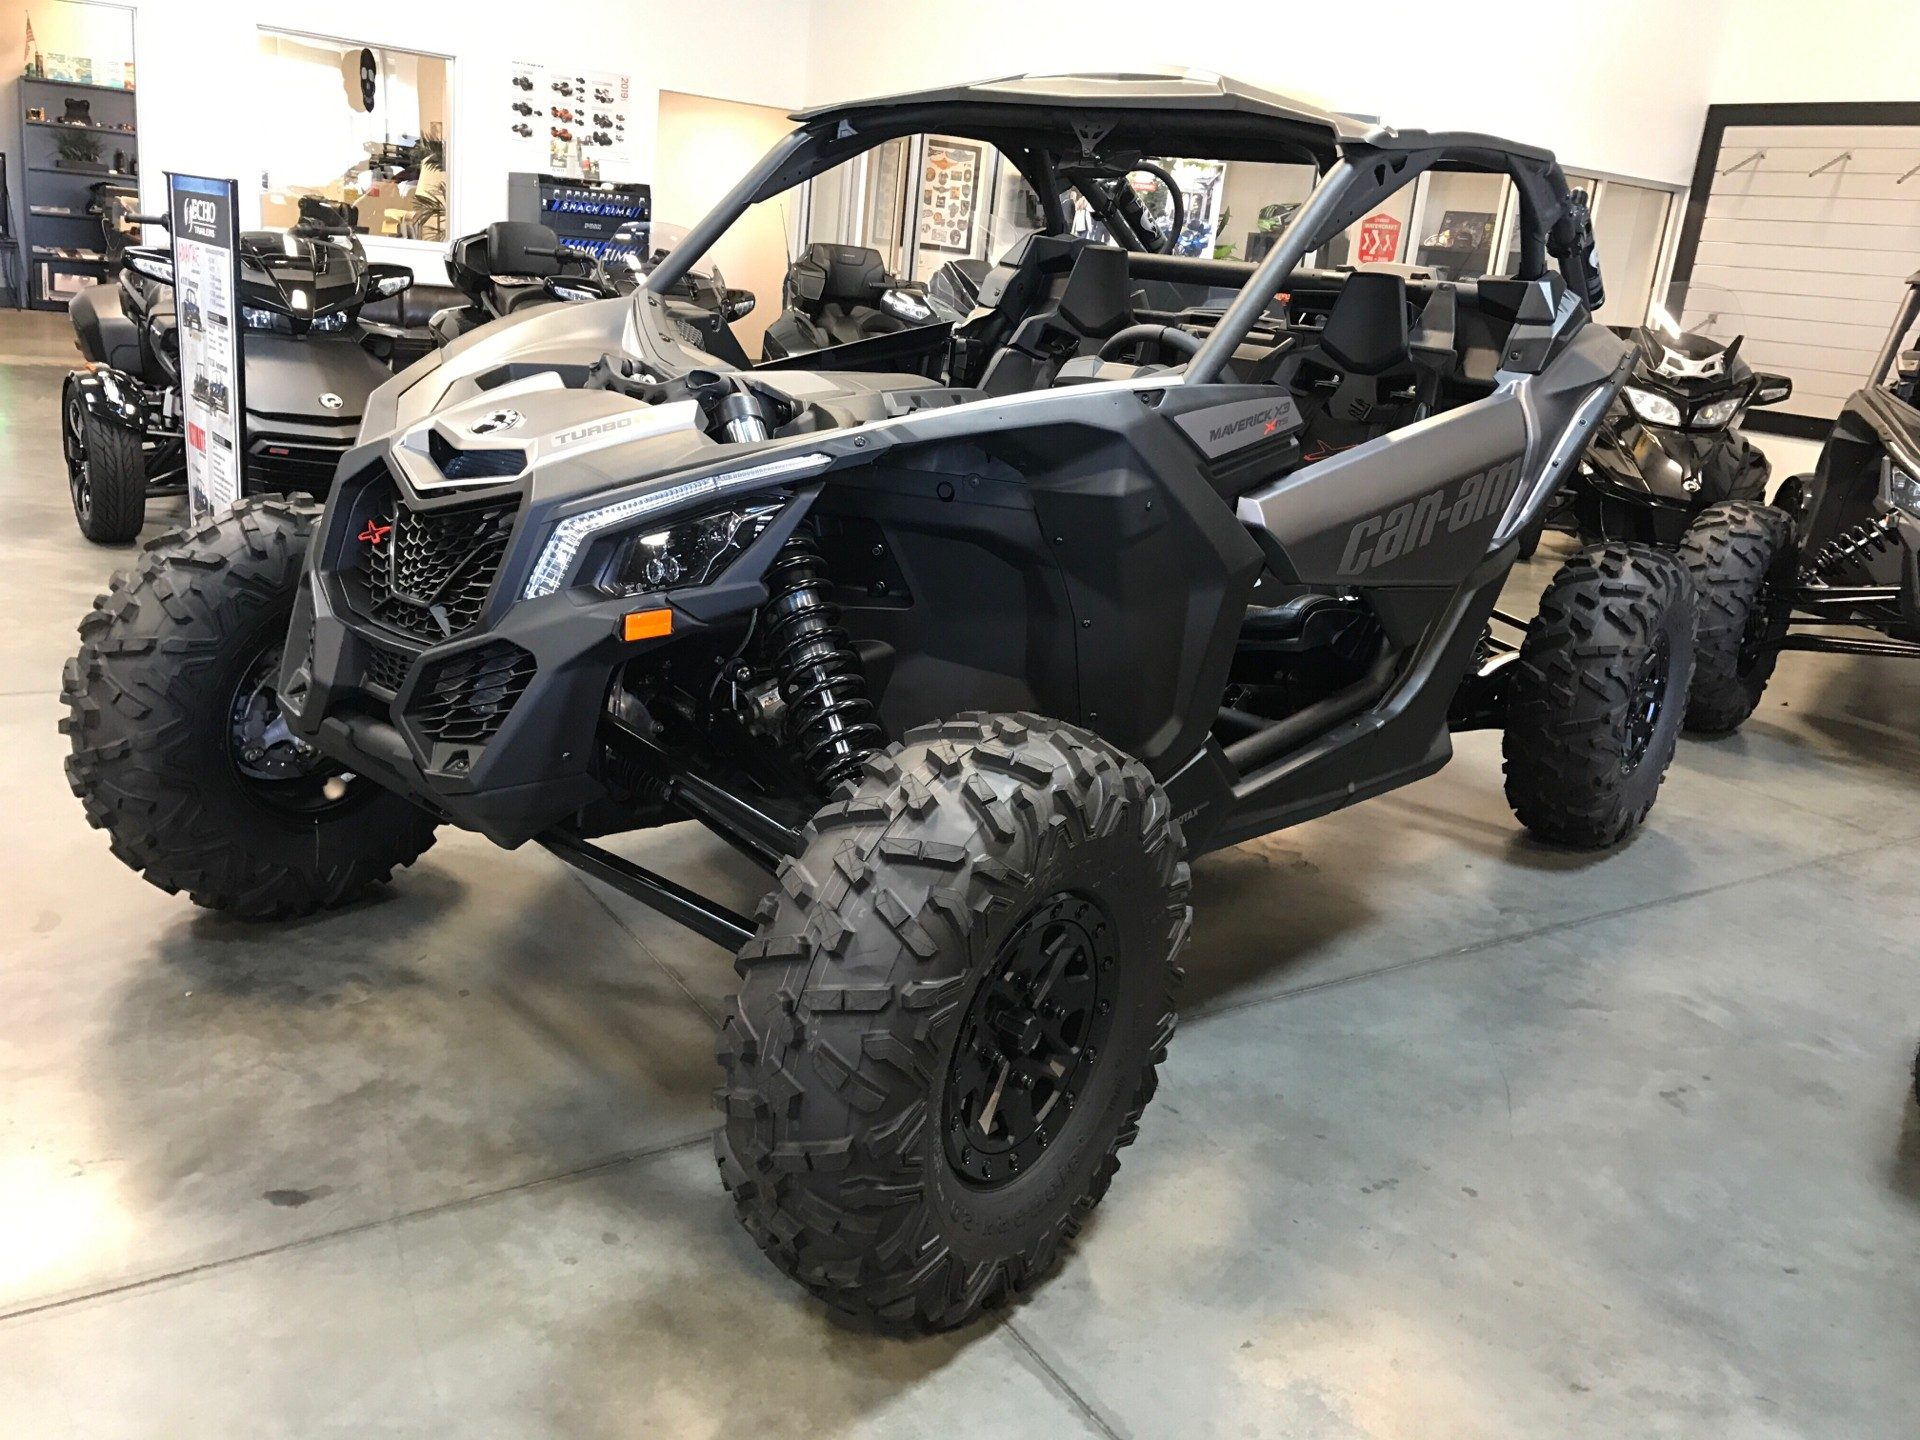 2018 Can-Am Maverick X3 X rs Turbo R in Las Vegas, Nevada